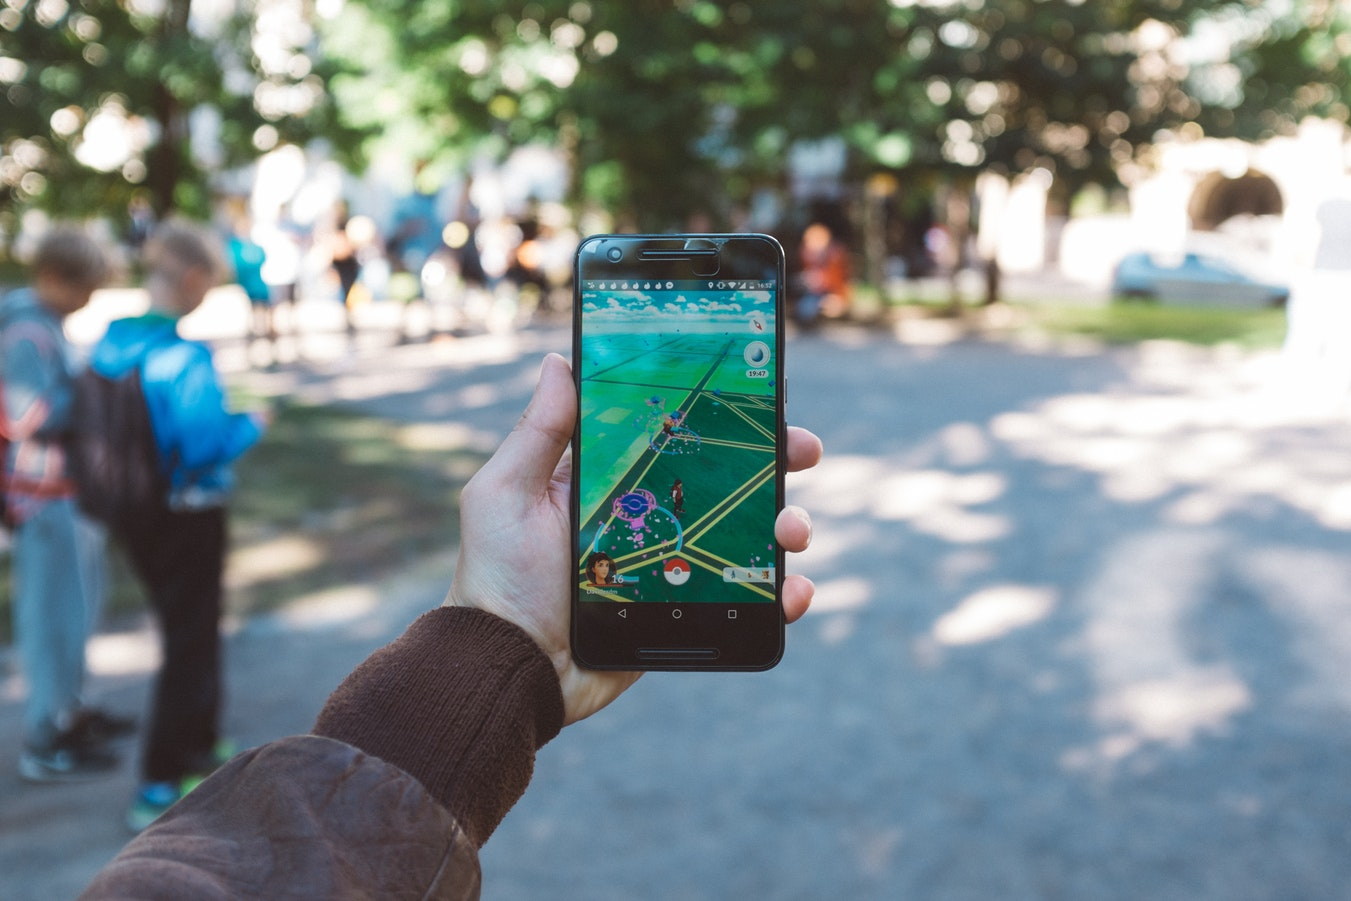 Study performed using Stanford students shows the effects of augmented reality - BYU-I Scroll